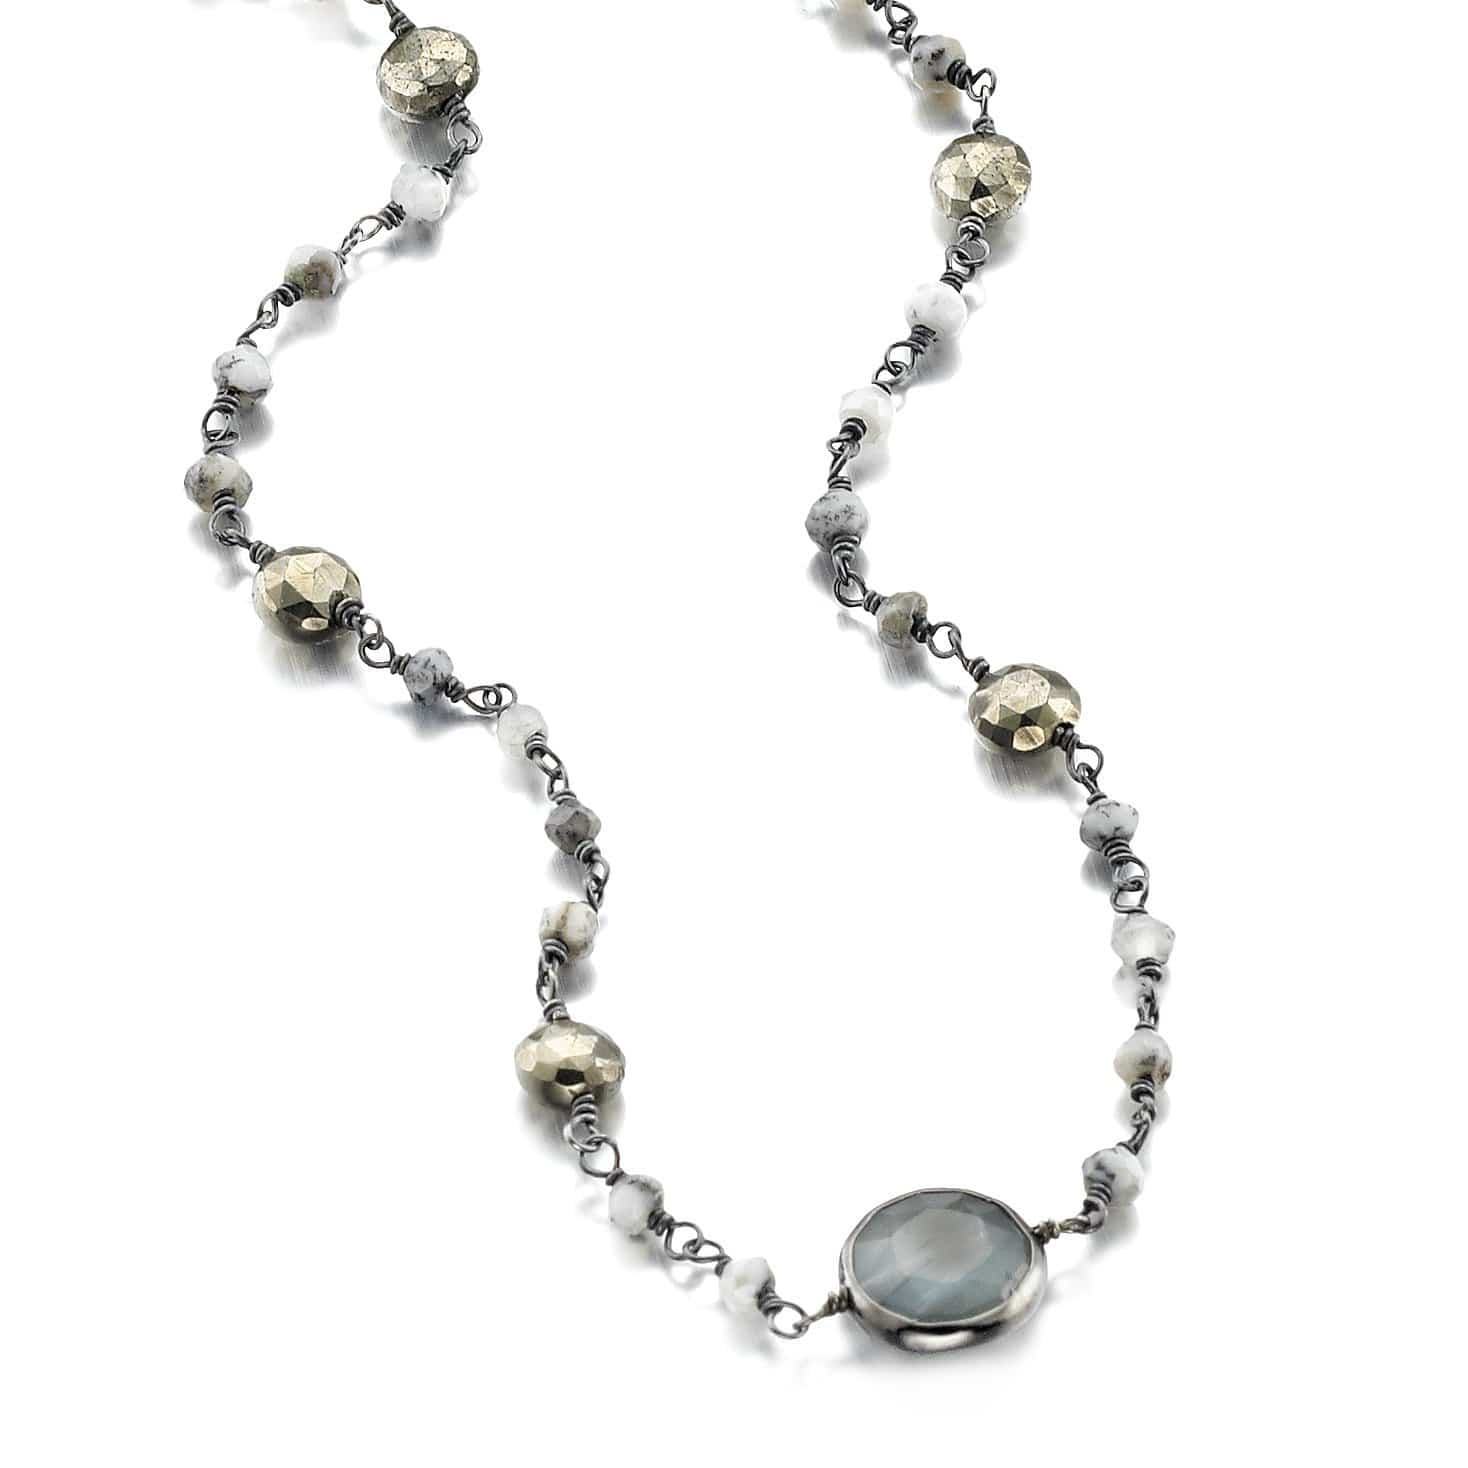 ela rae libi II satellite necklace iolite pyrite rainbow moonstone 14k yellow gold plate